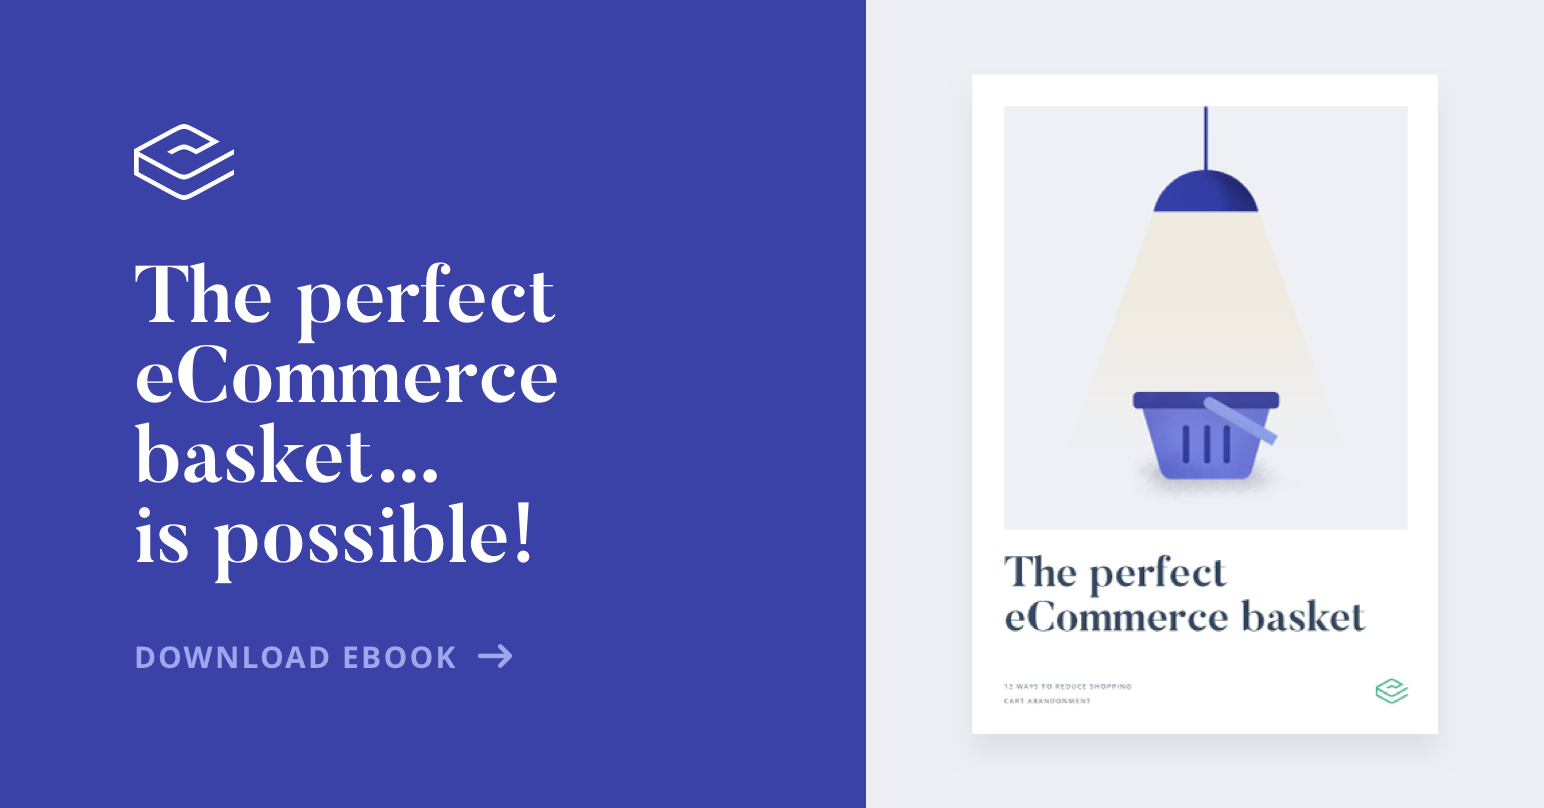 CTA - THE PERFECT ECOMMERCE BASKET